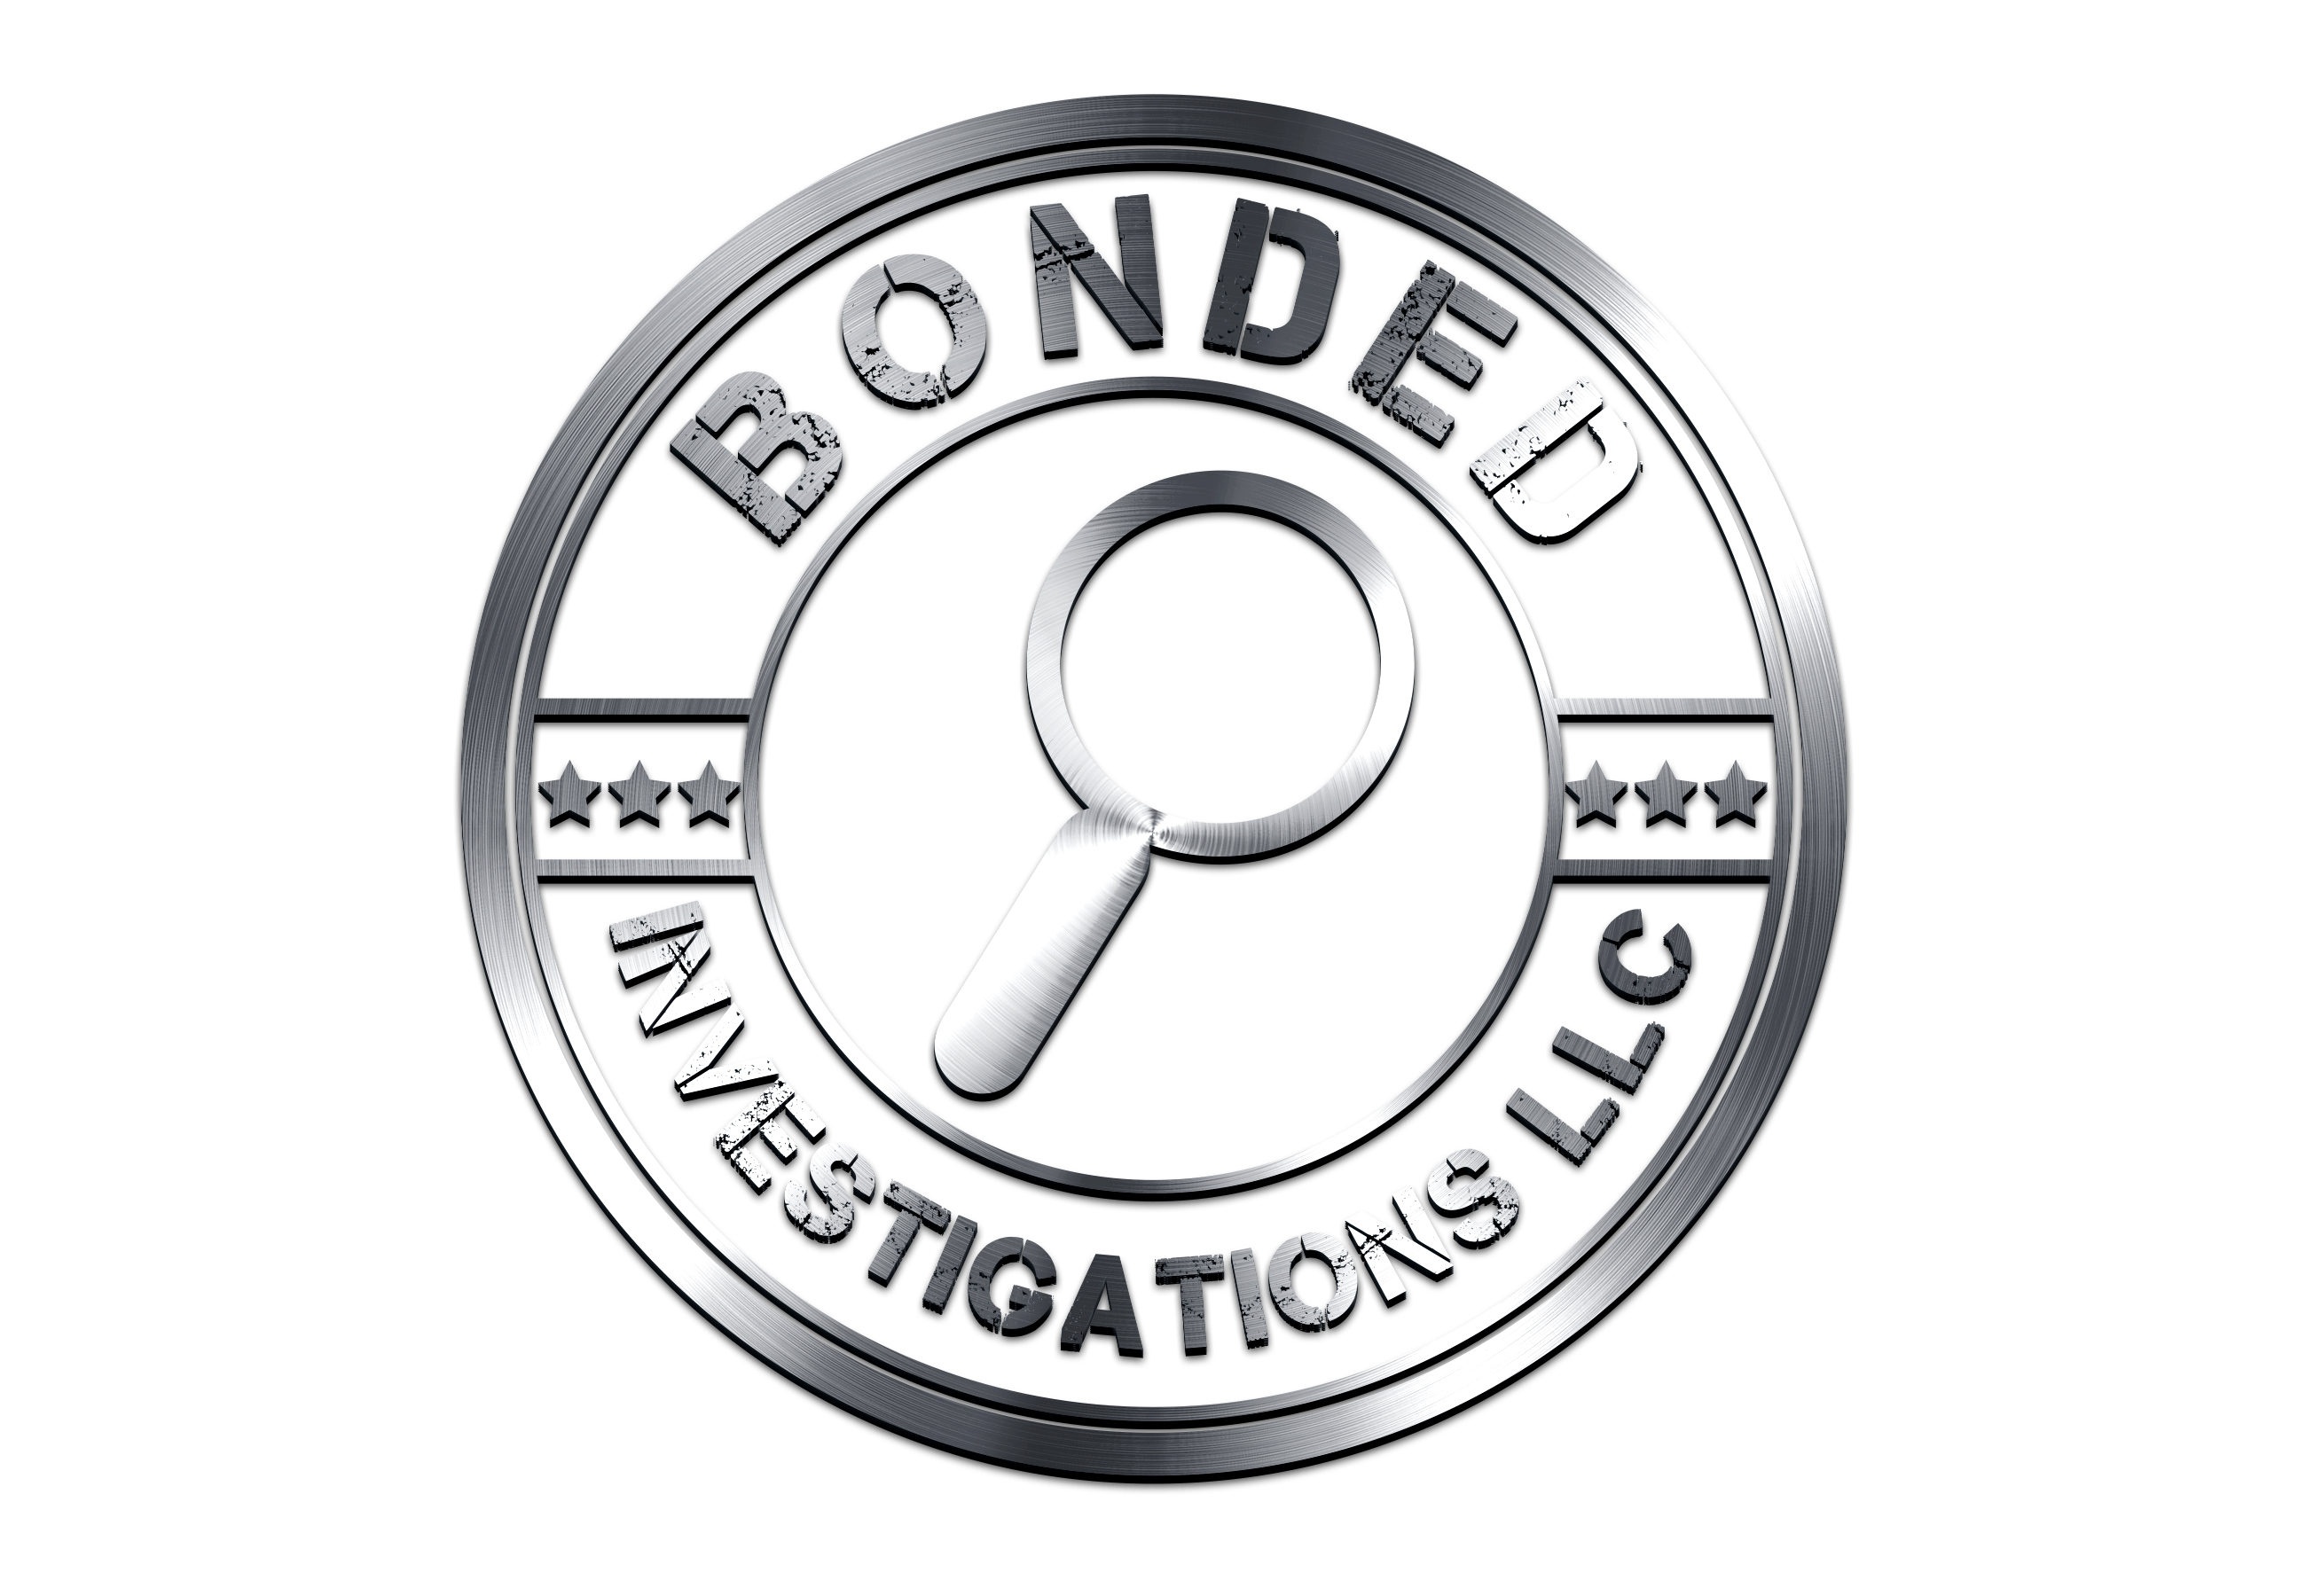 Bonded Investigations, LLC.